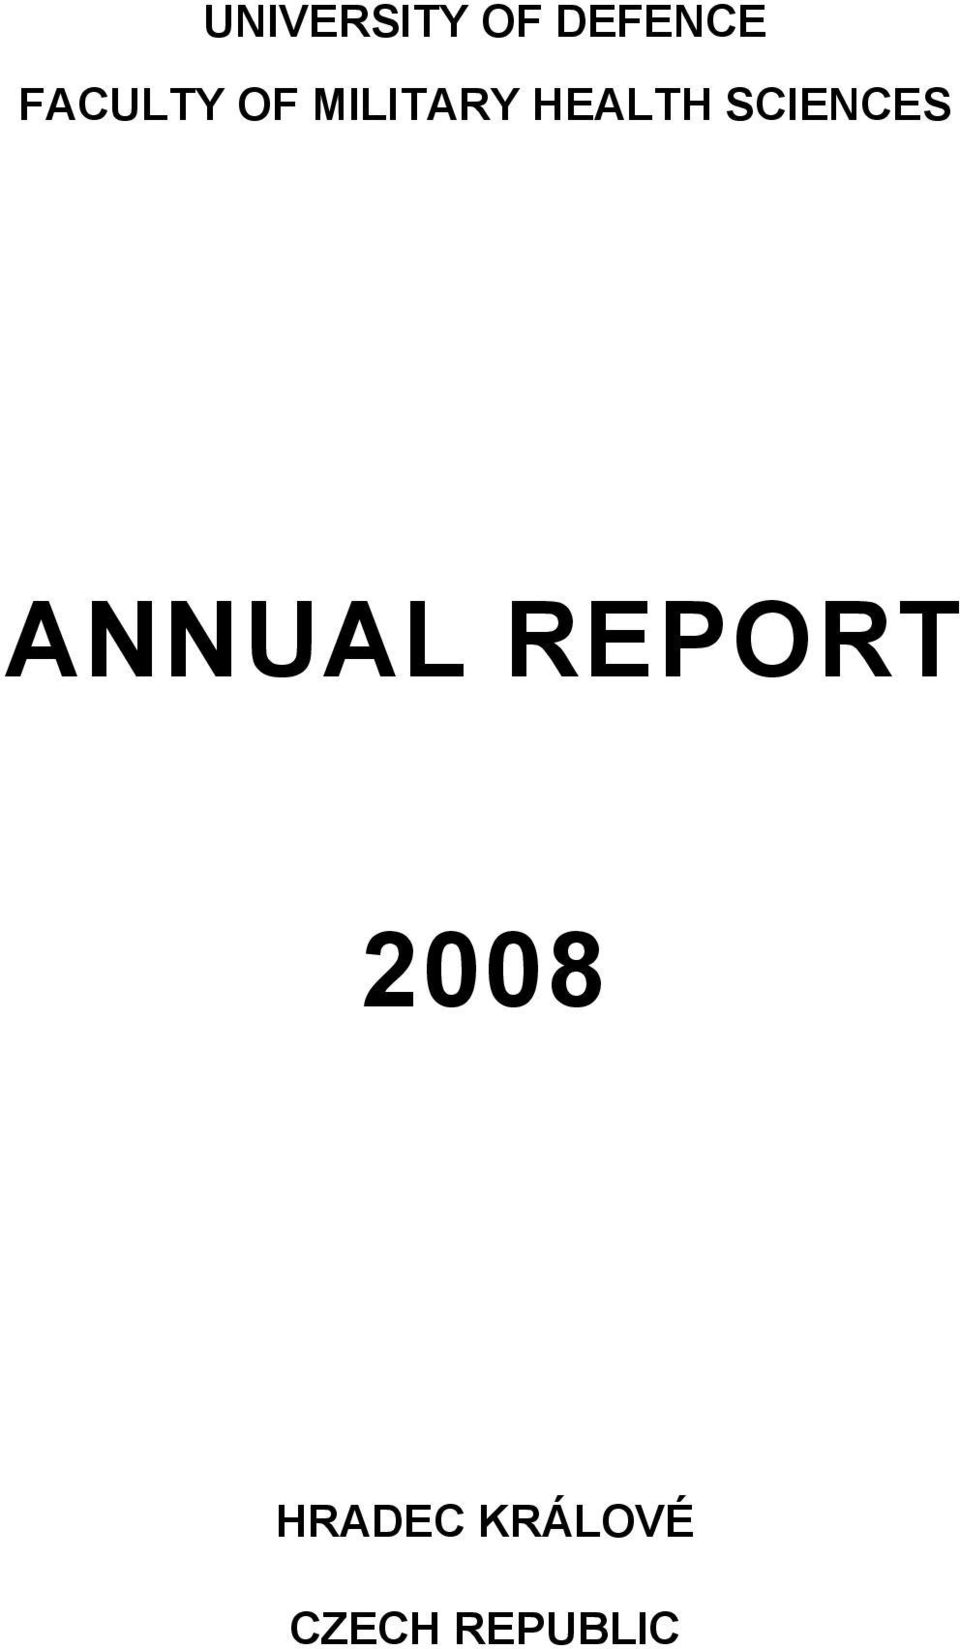 SCIENCES ANNUAL REPORT